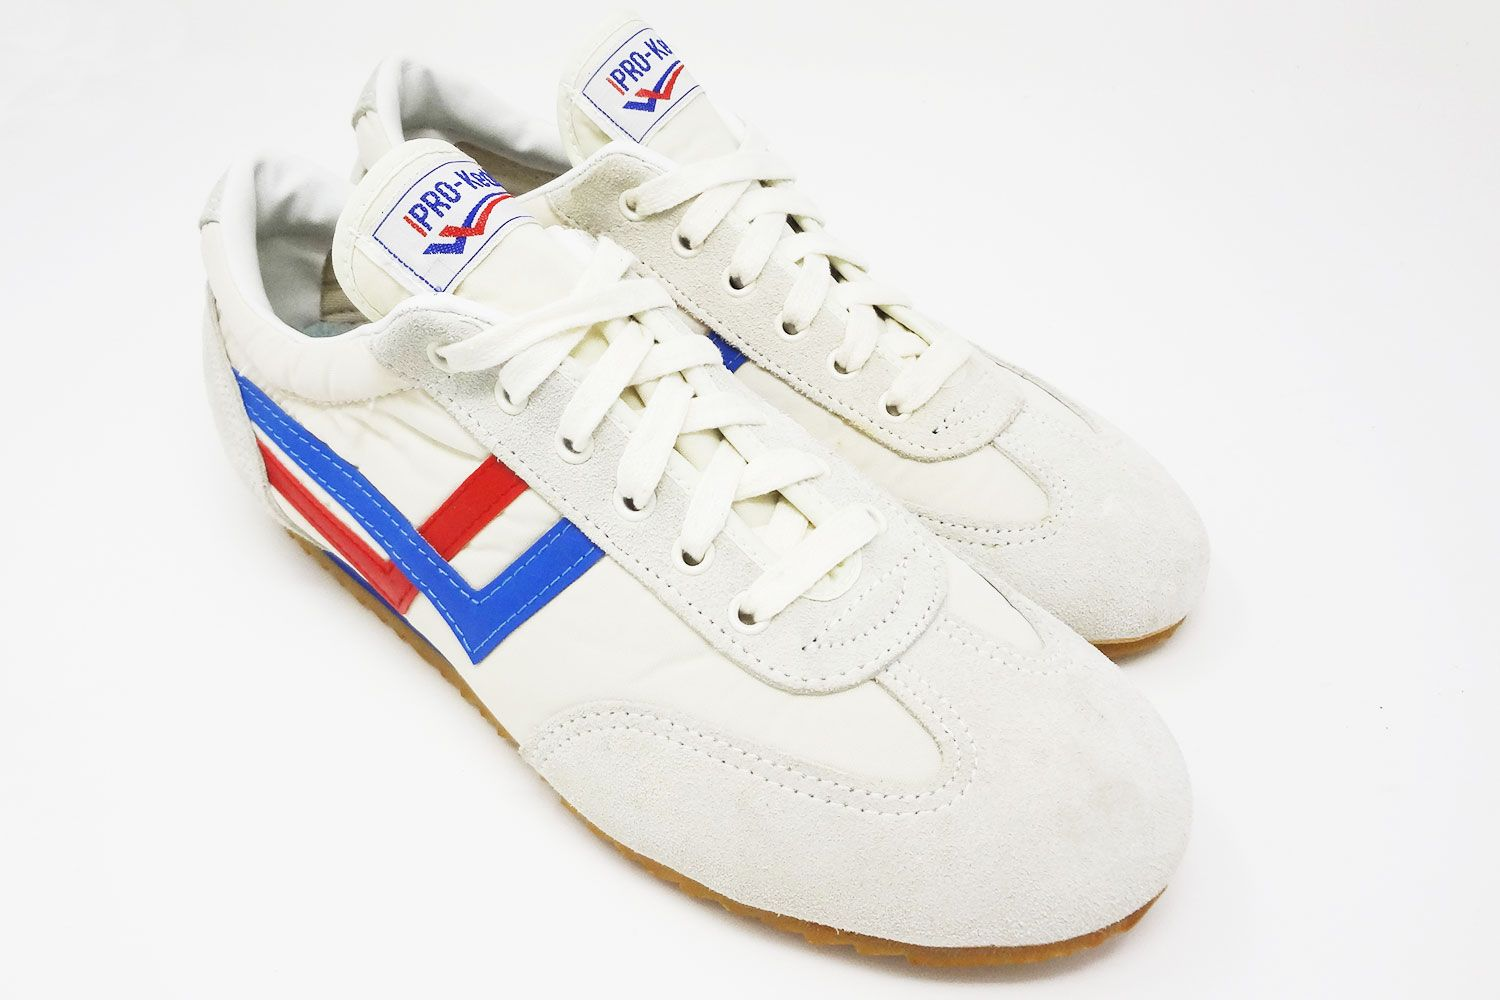 late 70s early 80s Pro-Keds sneakers